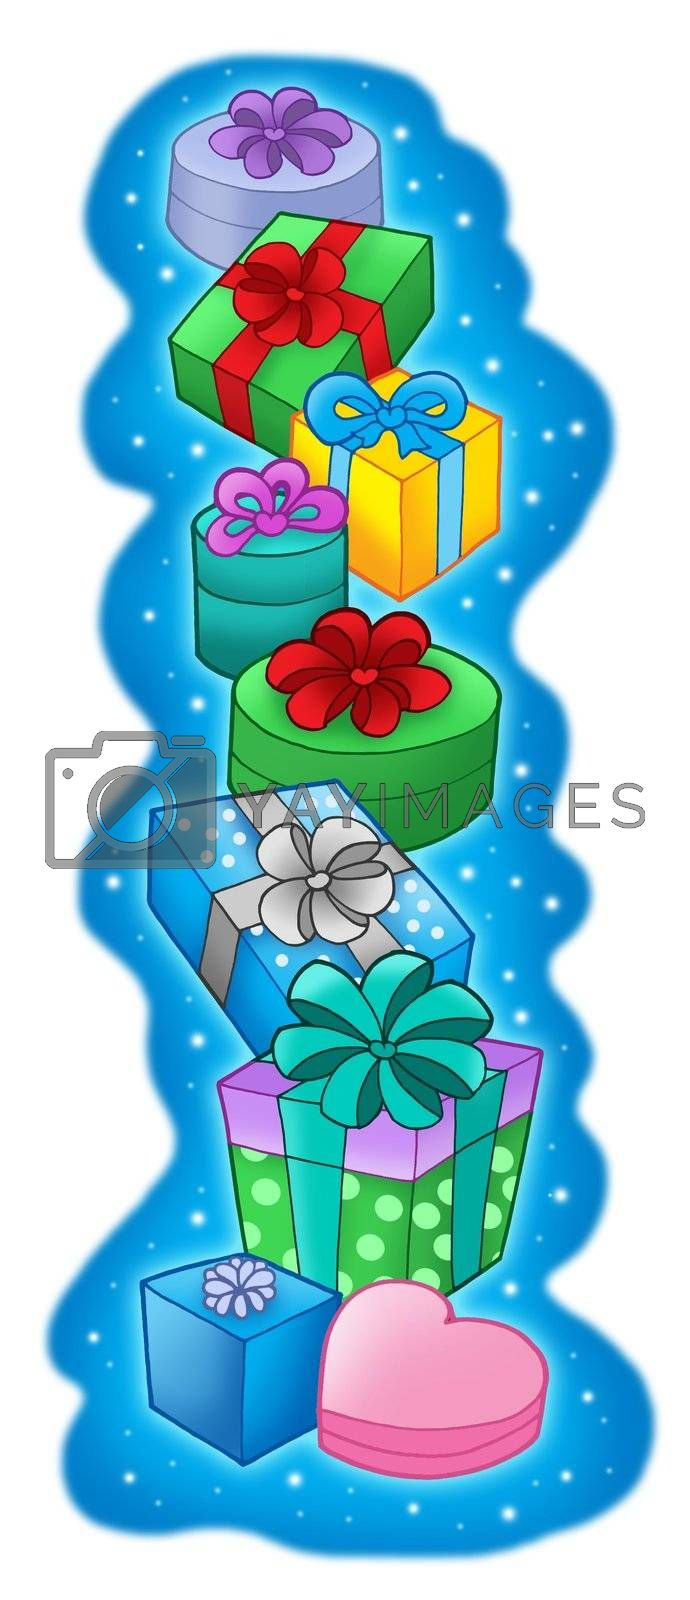 Pile of Christmas gifts on blue background -color illustration.